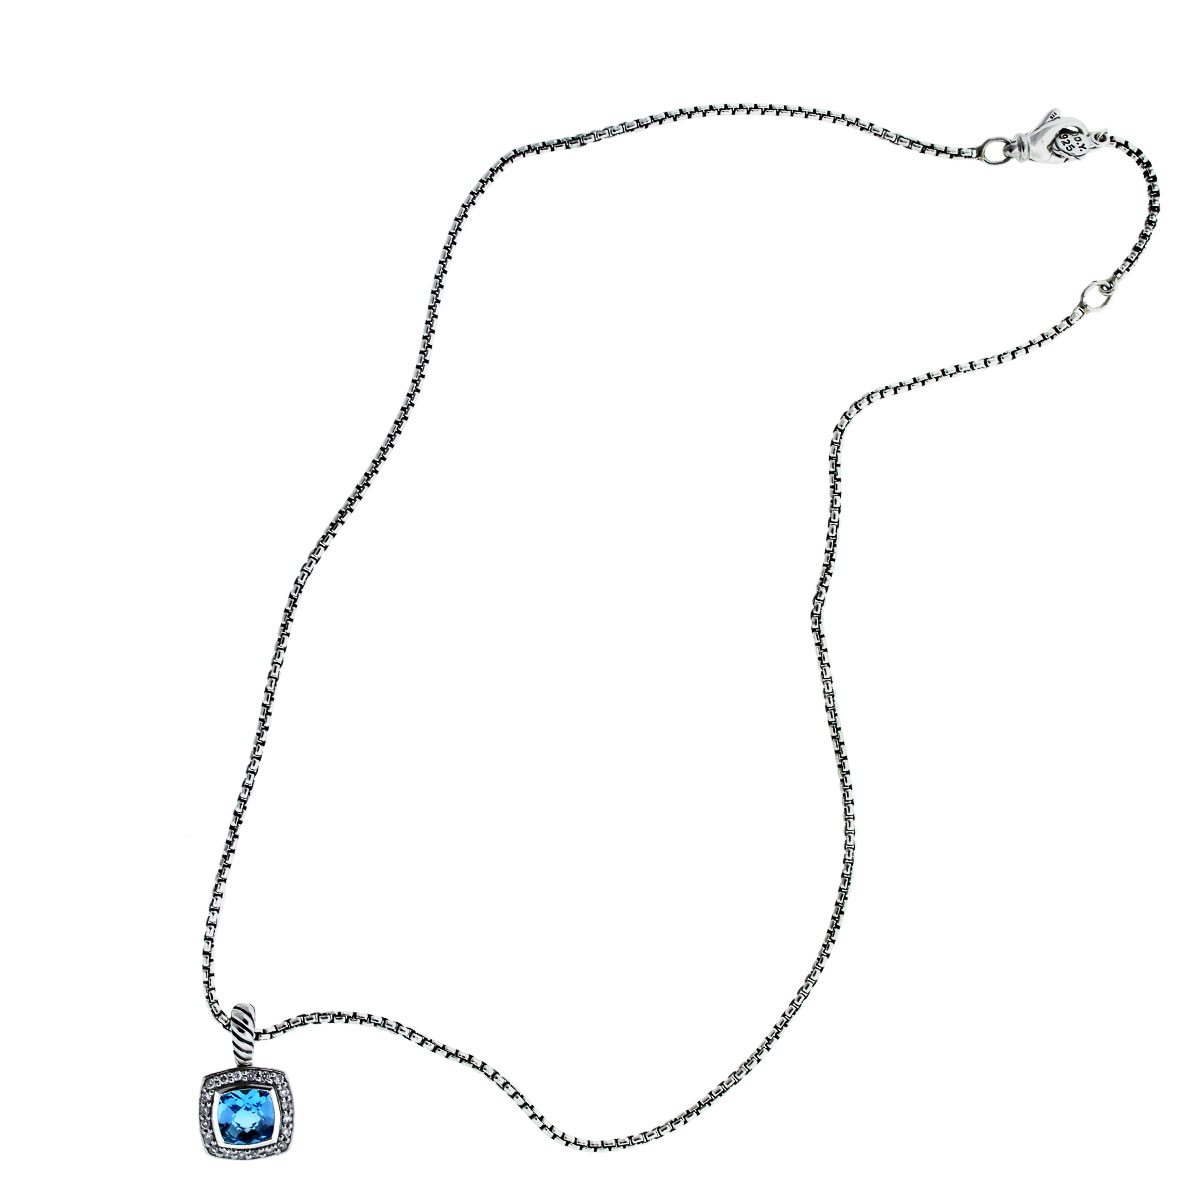 David Yurman Albion with Blue Topaz and Diamonds on Chain Necklace